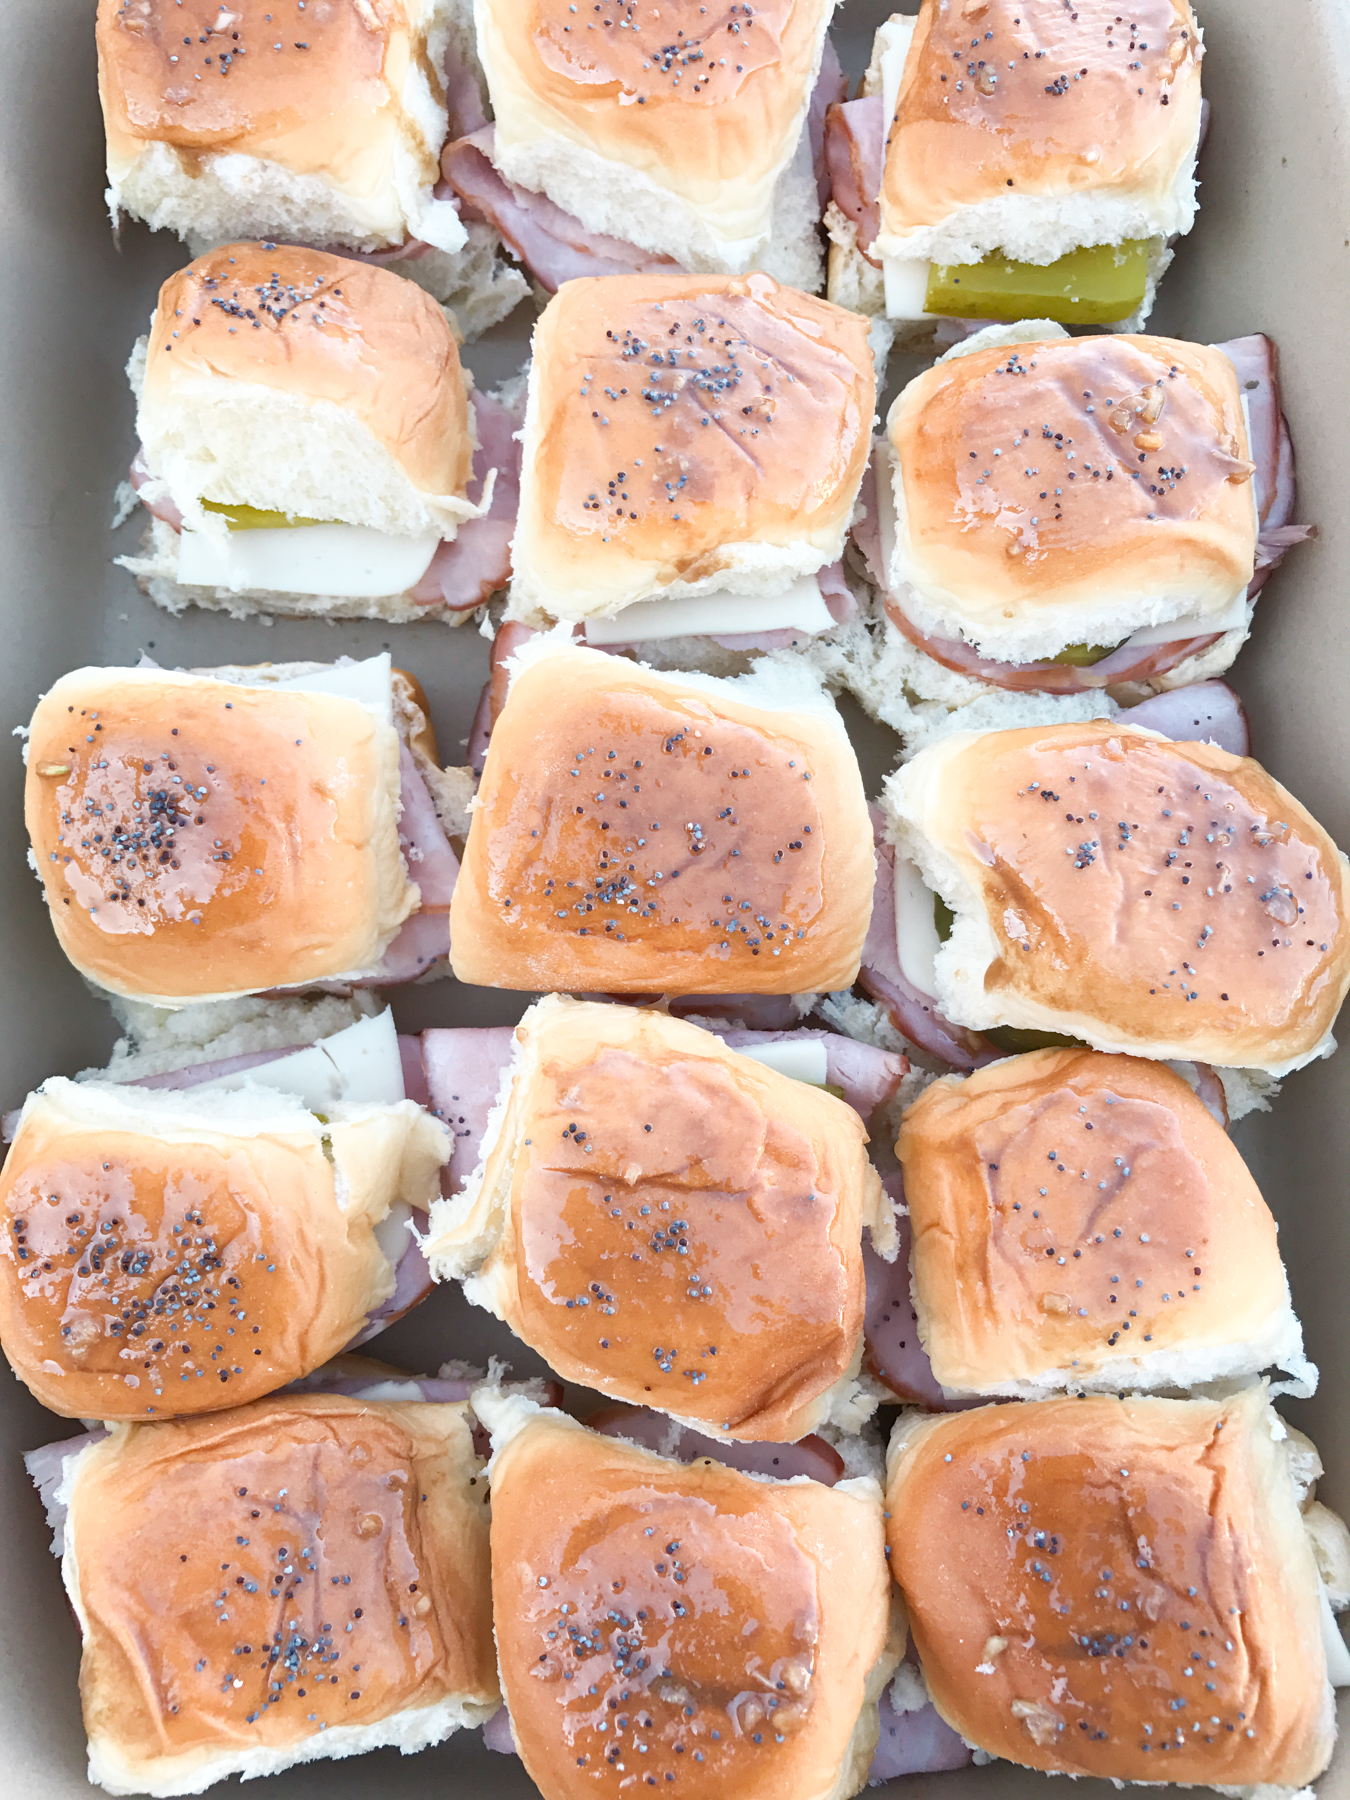 Cuban Sliders - These bite-sized sliders are filled with ham, swiss cheese and pickles on slider Hawaiian buns.